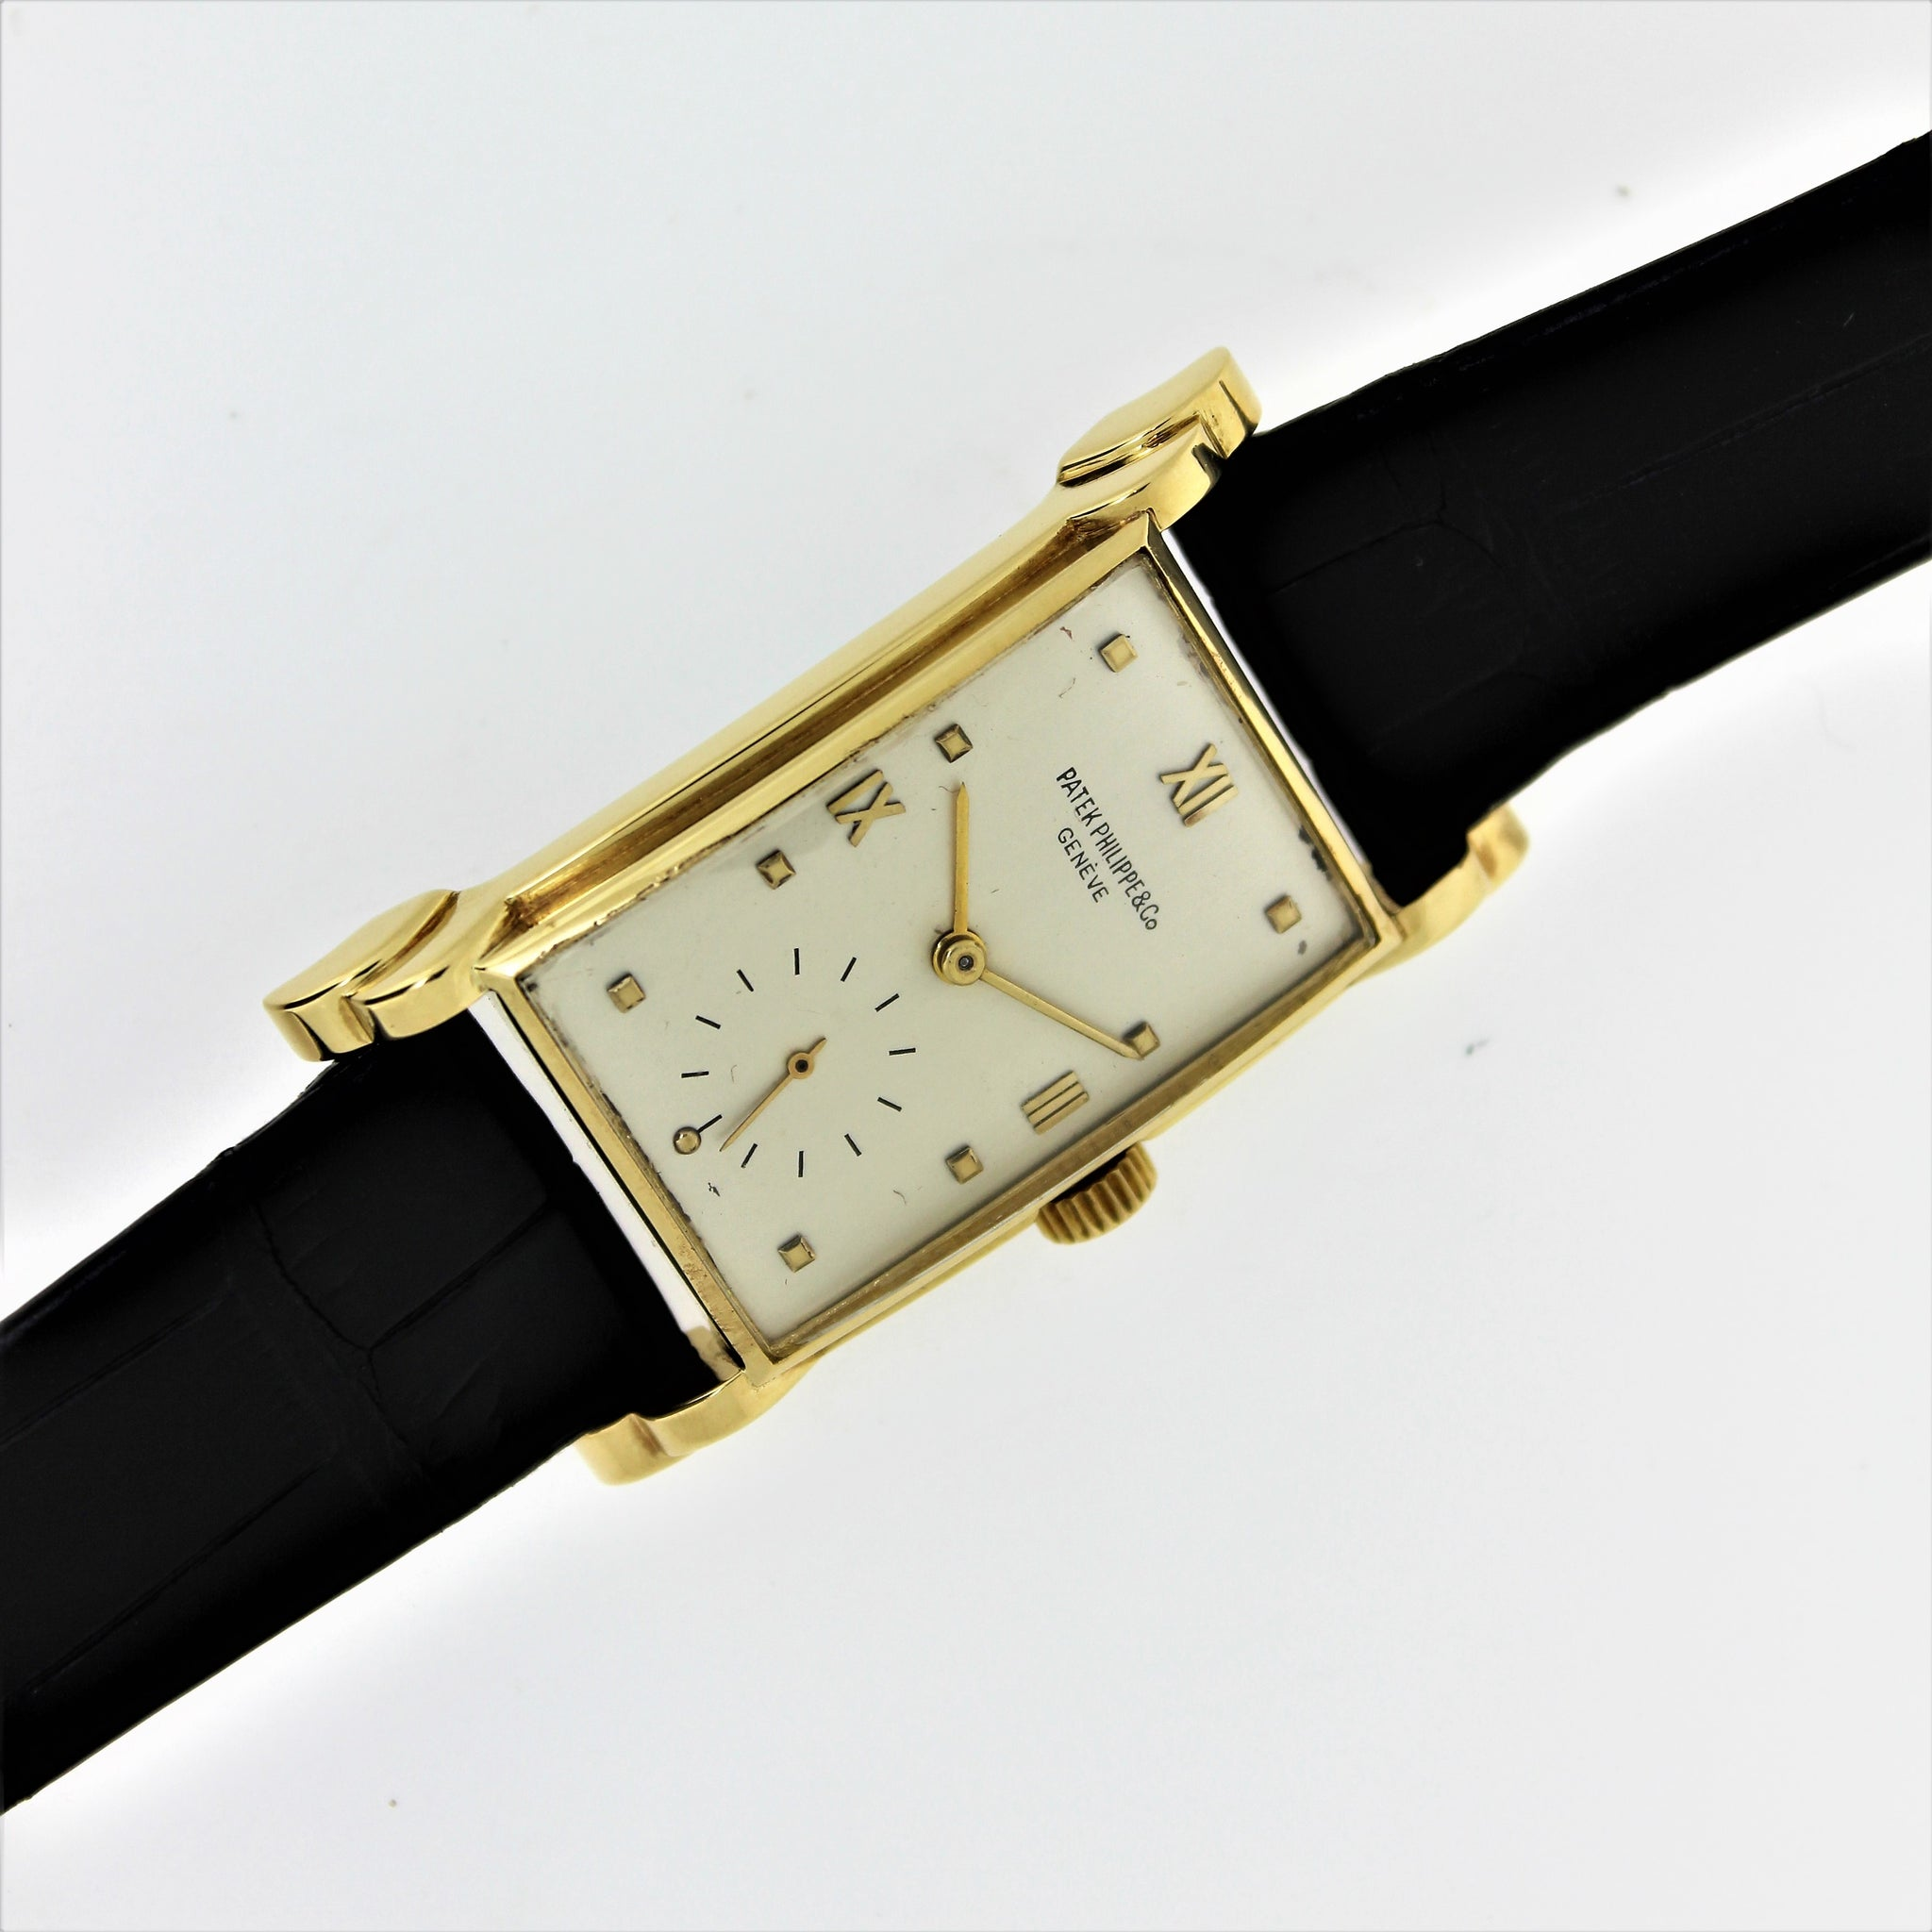 Patek Philippe 2415J, Oversized Rectangular watch with stepped fancy lugs, circa 1948